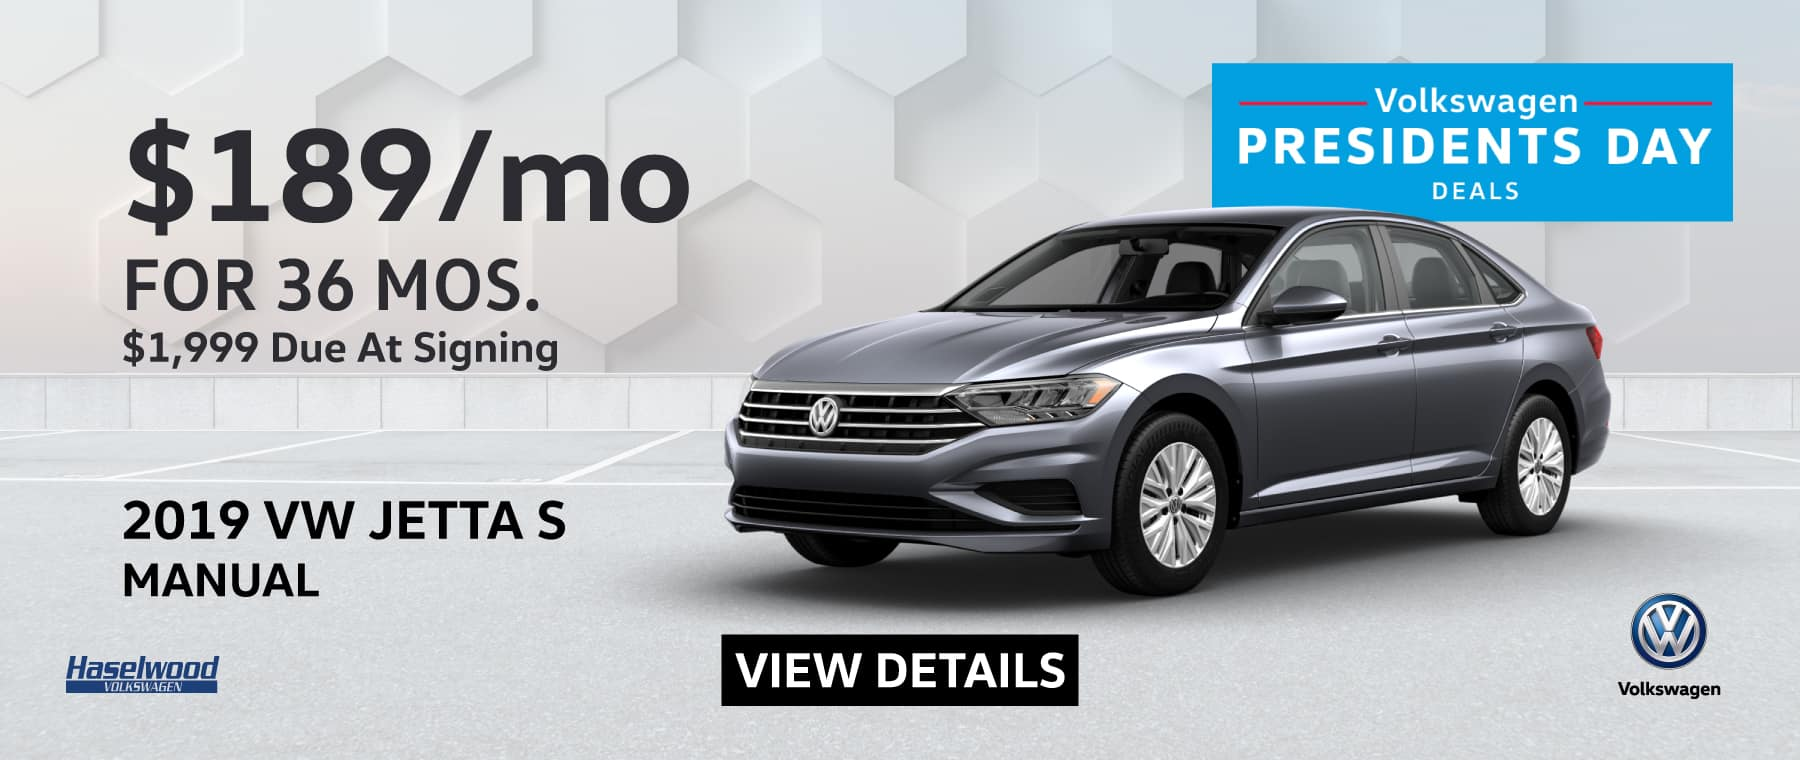 2019 VW Jetta S Manual $189/mo for 36 months $1,999 due at signing*   * Offer valid on 2019 VW Jetta S Manual. $189 per mo. for 36 months. Lease with $1,999 due at signing; includes a $595 acquisition fee, financed through Volkswagen Credit. No security deposit required. Valid on VIN: 3VWN57BU4KM110143, 3VWN57BUXKM115069, 3VWN57BU6KM119703.For highly qualified customers on approved top tier credit through Volkswagen Credit. Lessee responsible for maintenance, excessive wear/tear and 20¢/mi over 10K mi/yr. Excludes state and local taxes, tags, registration and title, insurance and dealer charges. Subject to credit approval. 60 monthly payments required. Option to purchase at lease end. A negotiable dealer documentary service fee of up to $150 may be added to the sale price or capitalized cost. See dealer for complete details and restrictions. The People First Warranty: 6 years/72,000 miles (whichever occurs first). New Vehicle Limited Warranty on MY2018 and newer VW vehicles, excluding e-Golf. See owner's literature or dealer for warranty exclusions and limitations. Exp. 2/28/2019.